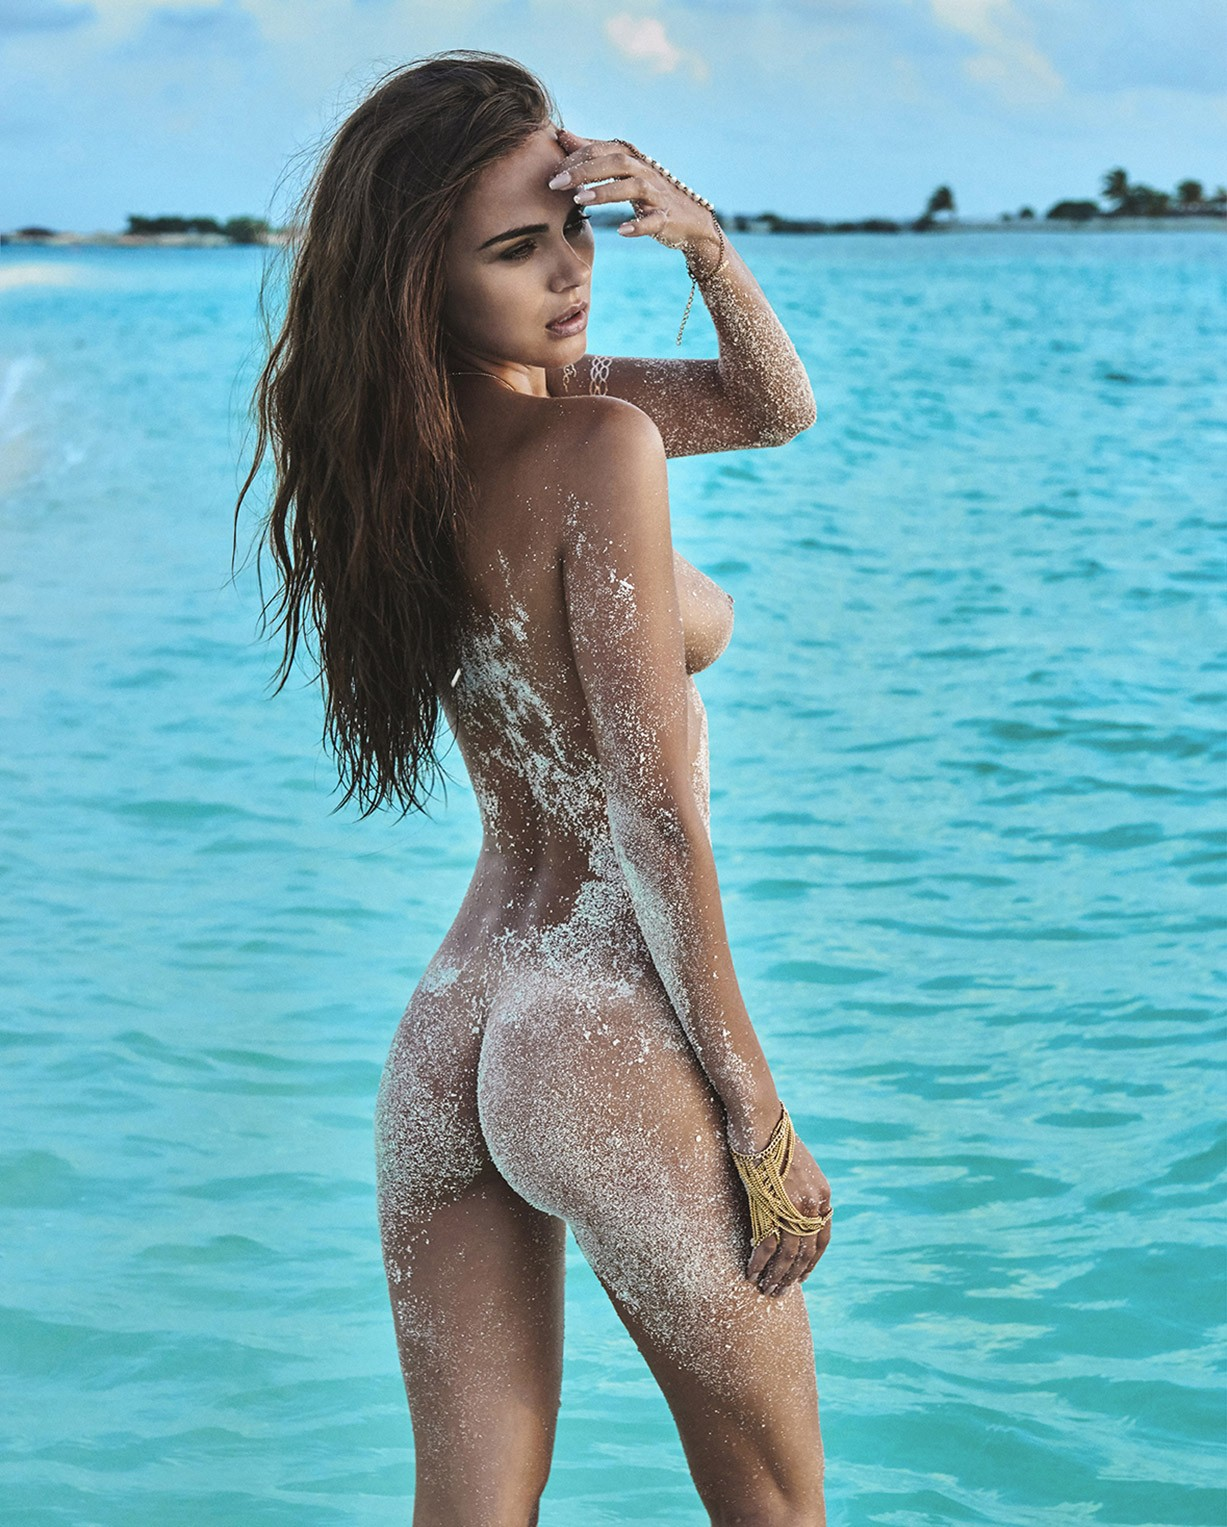 Ксения Дели / Xenia Deli nude by Jacques Weyers